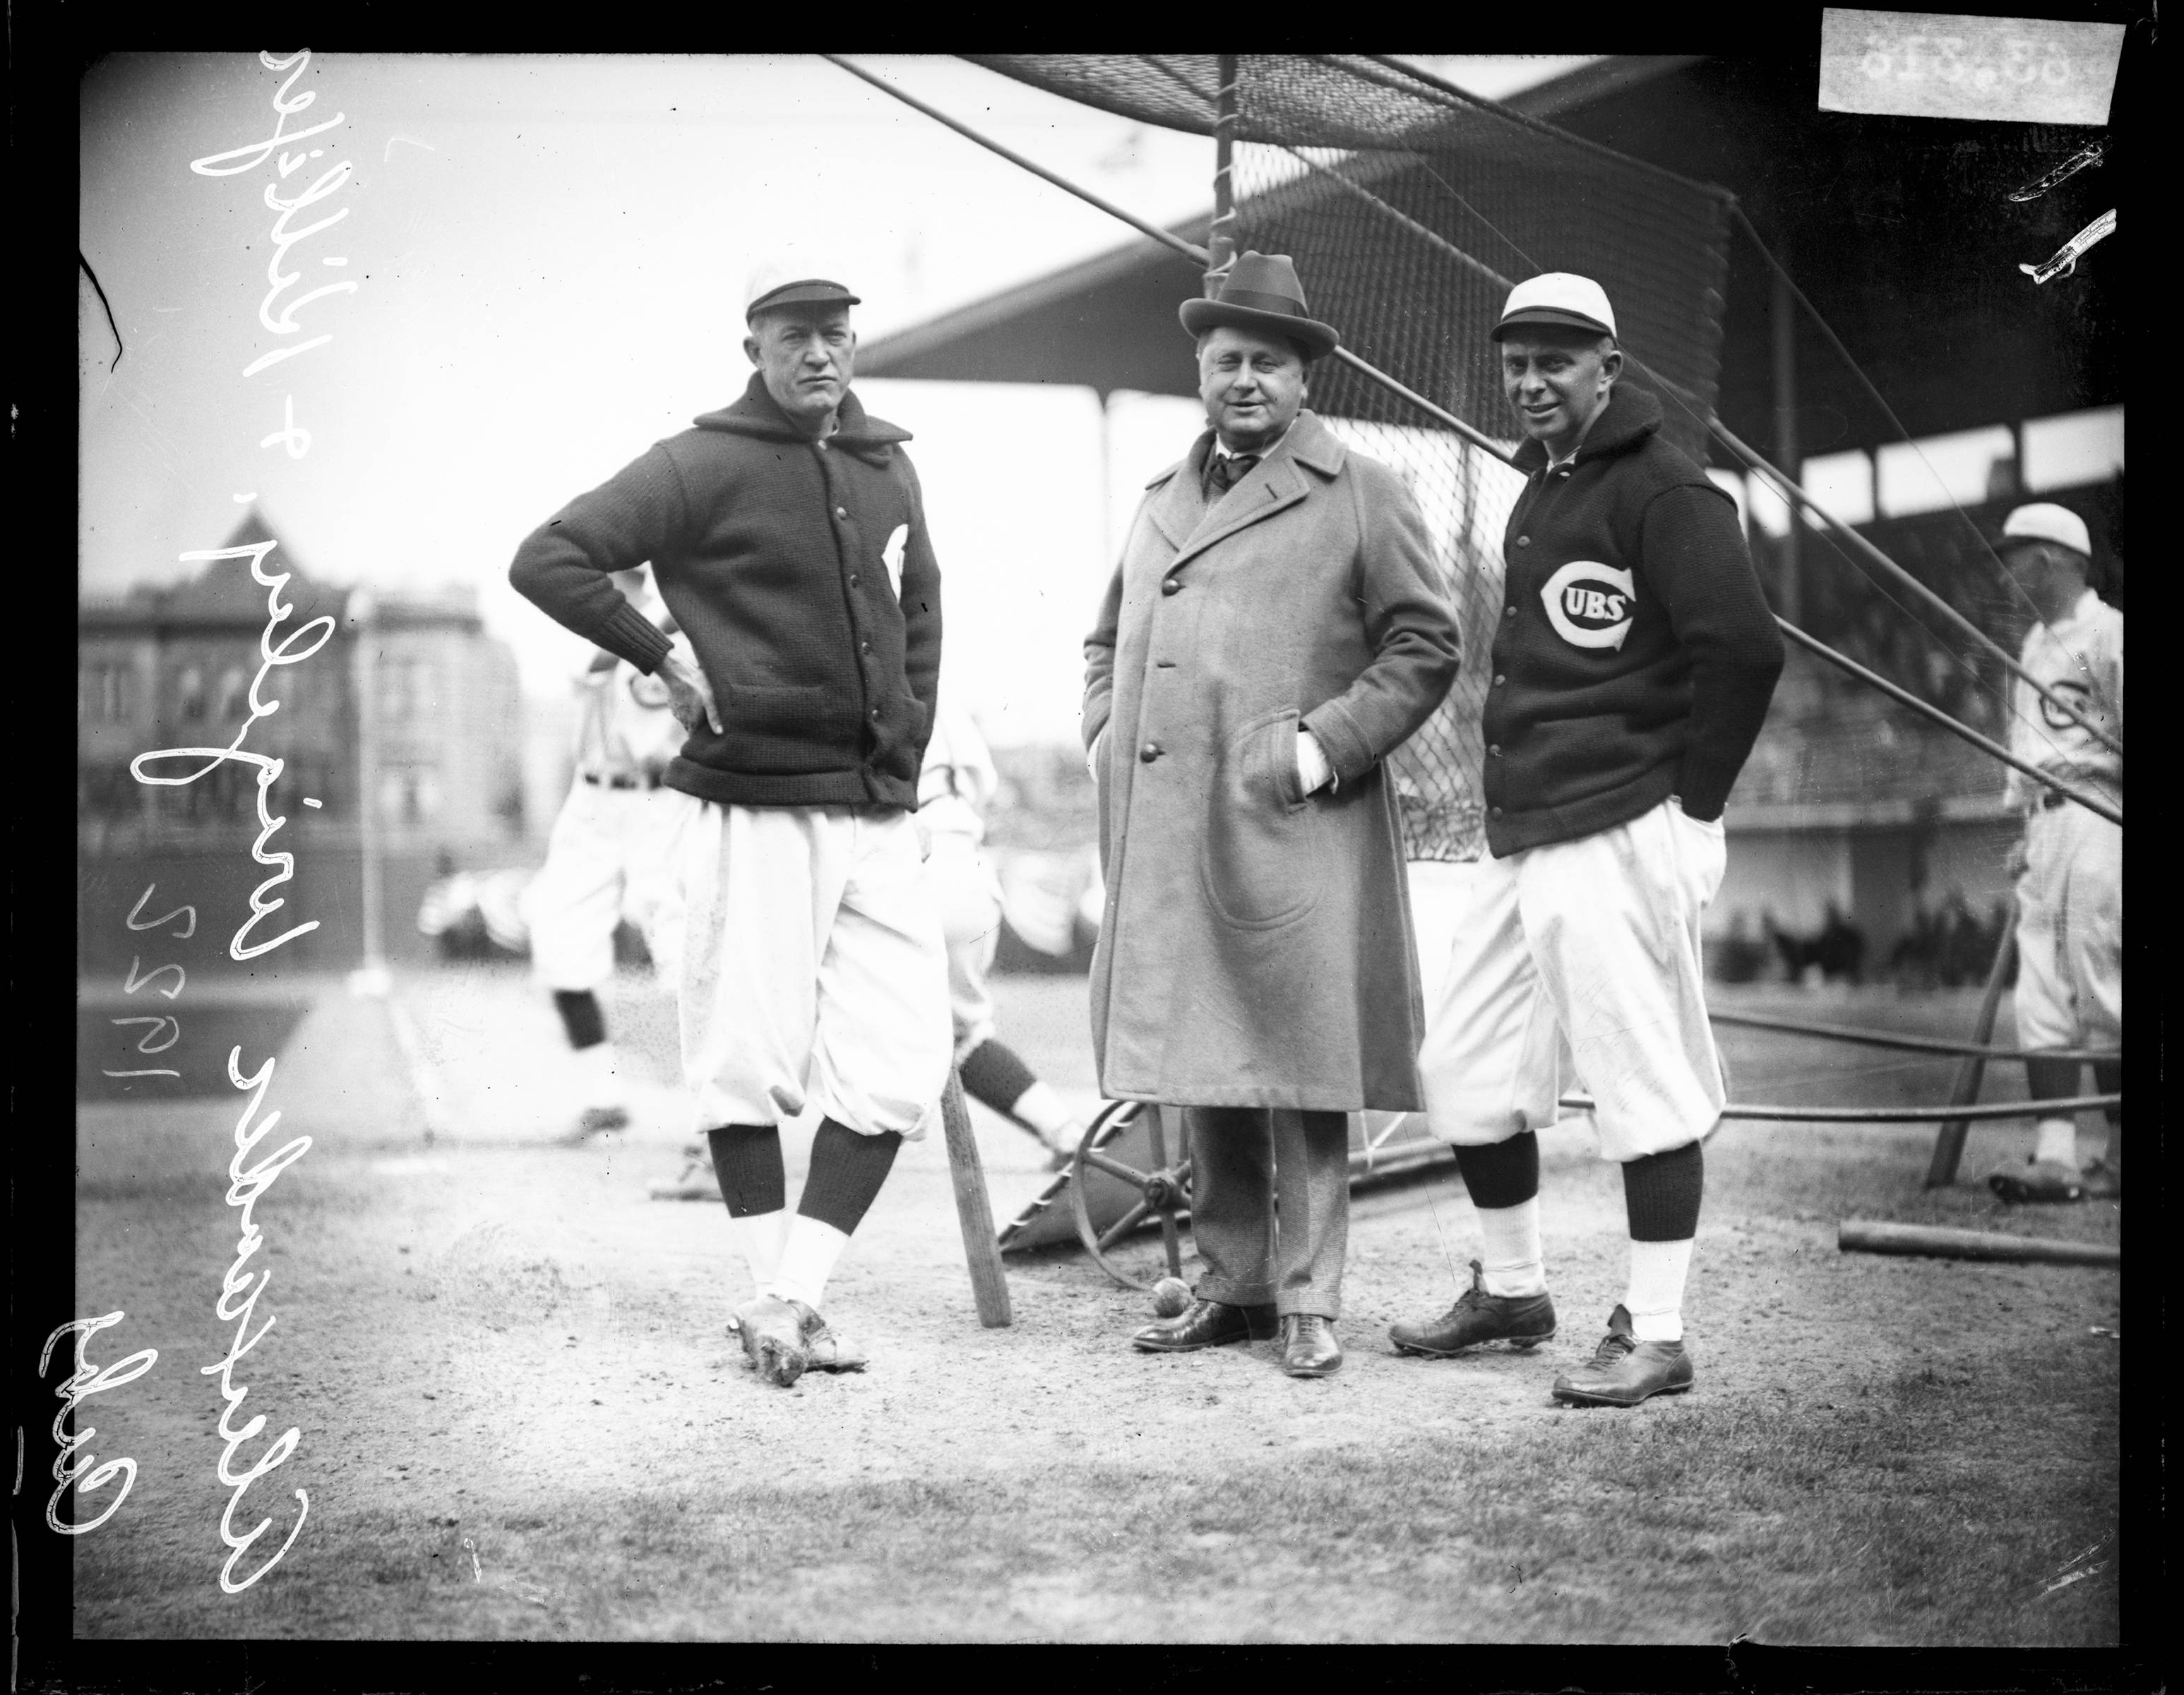 This 1922 photo shows from left, Chicago Cubs baseball player Pete Alexander, team owner William Wrigley Jr., and manager Bill Killefer standing behind a batting practice backstop on the field at Weeghman Park, in Chicago. Weeghman Park was renamed Wrigley Field in 1927.